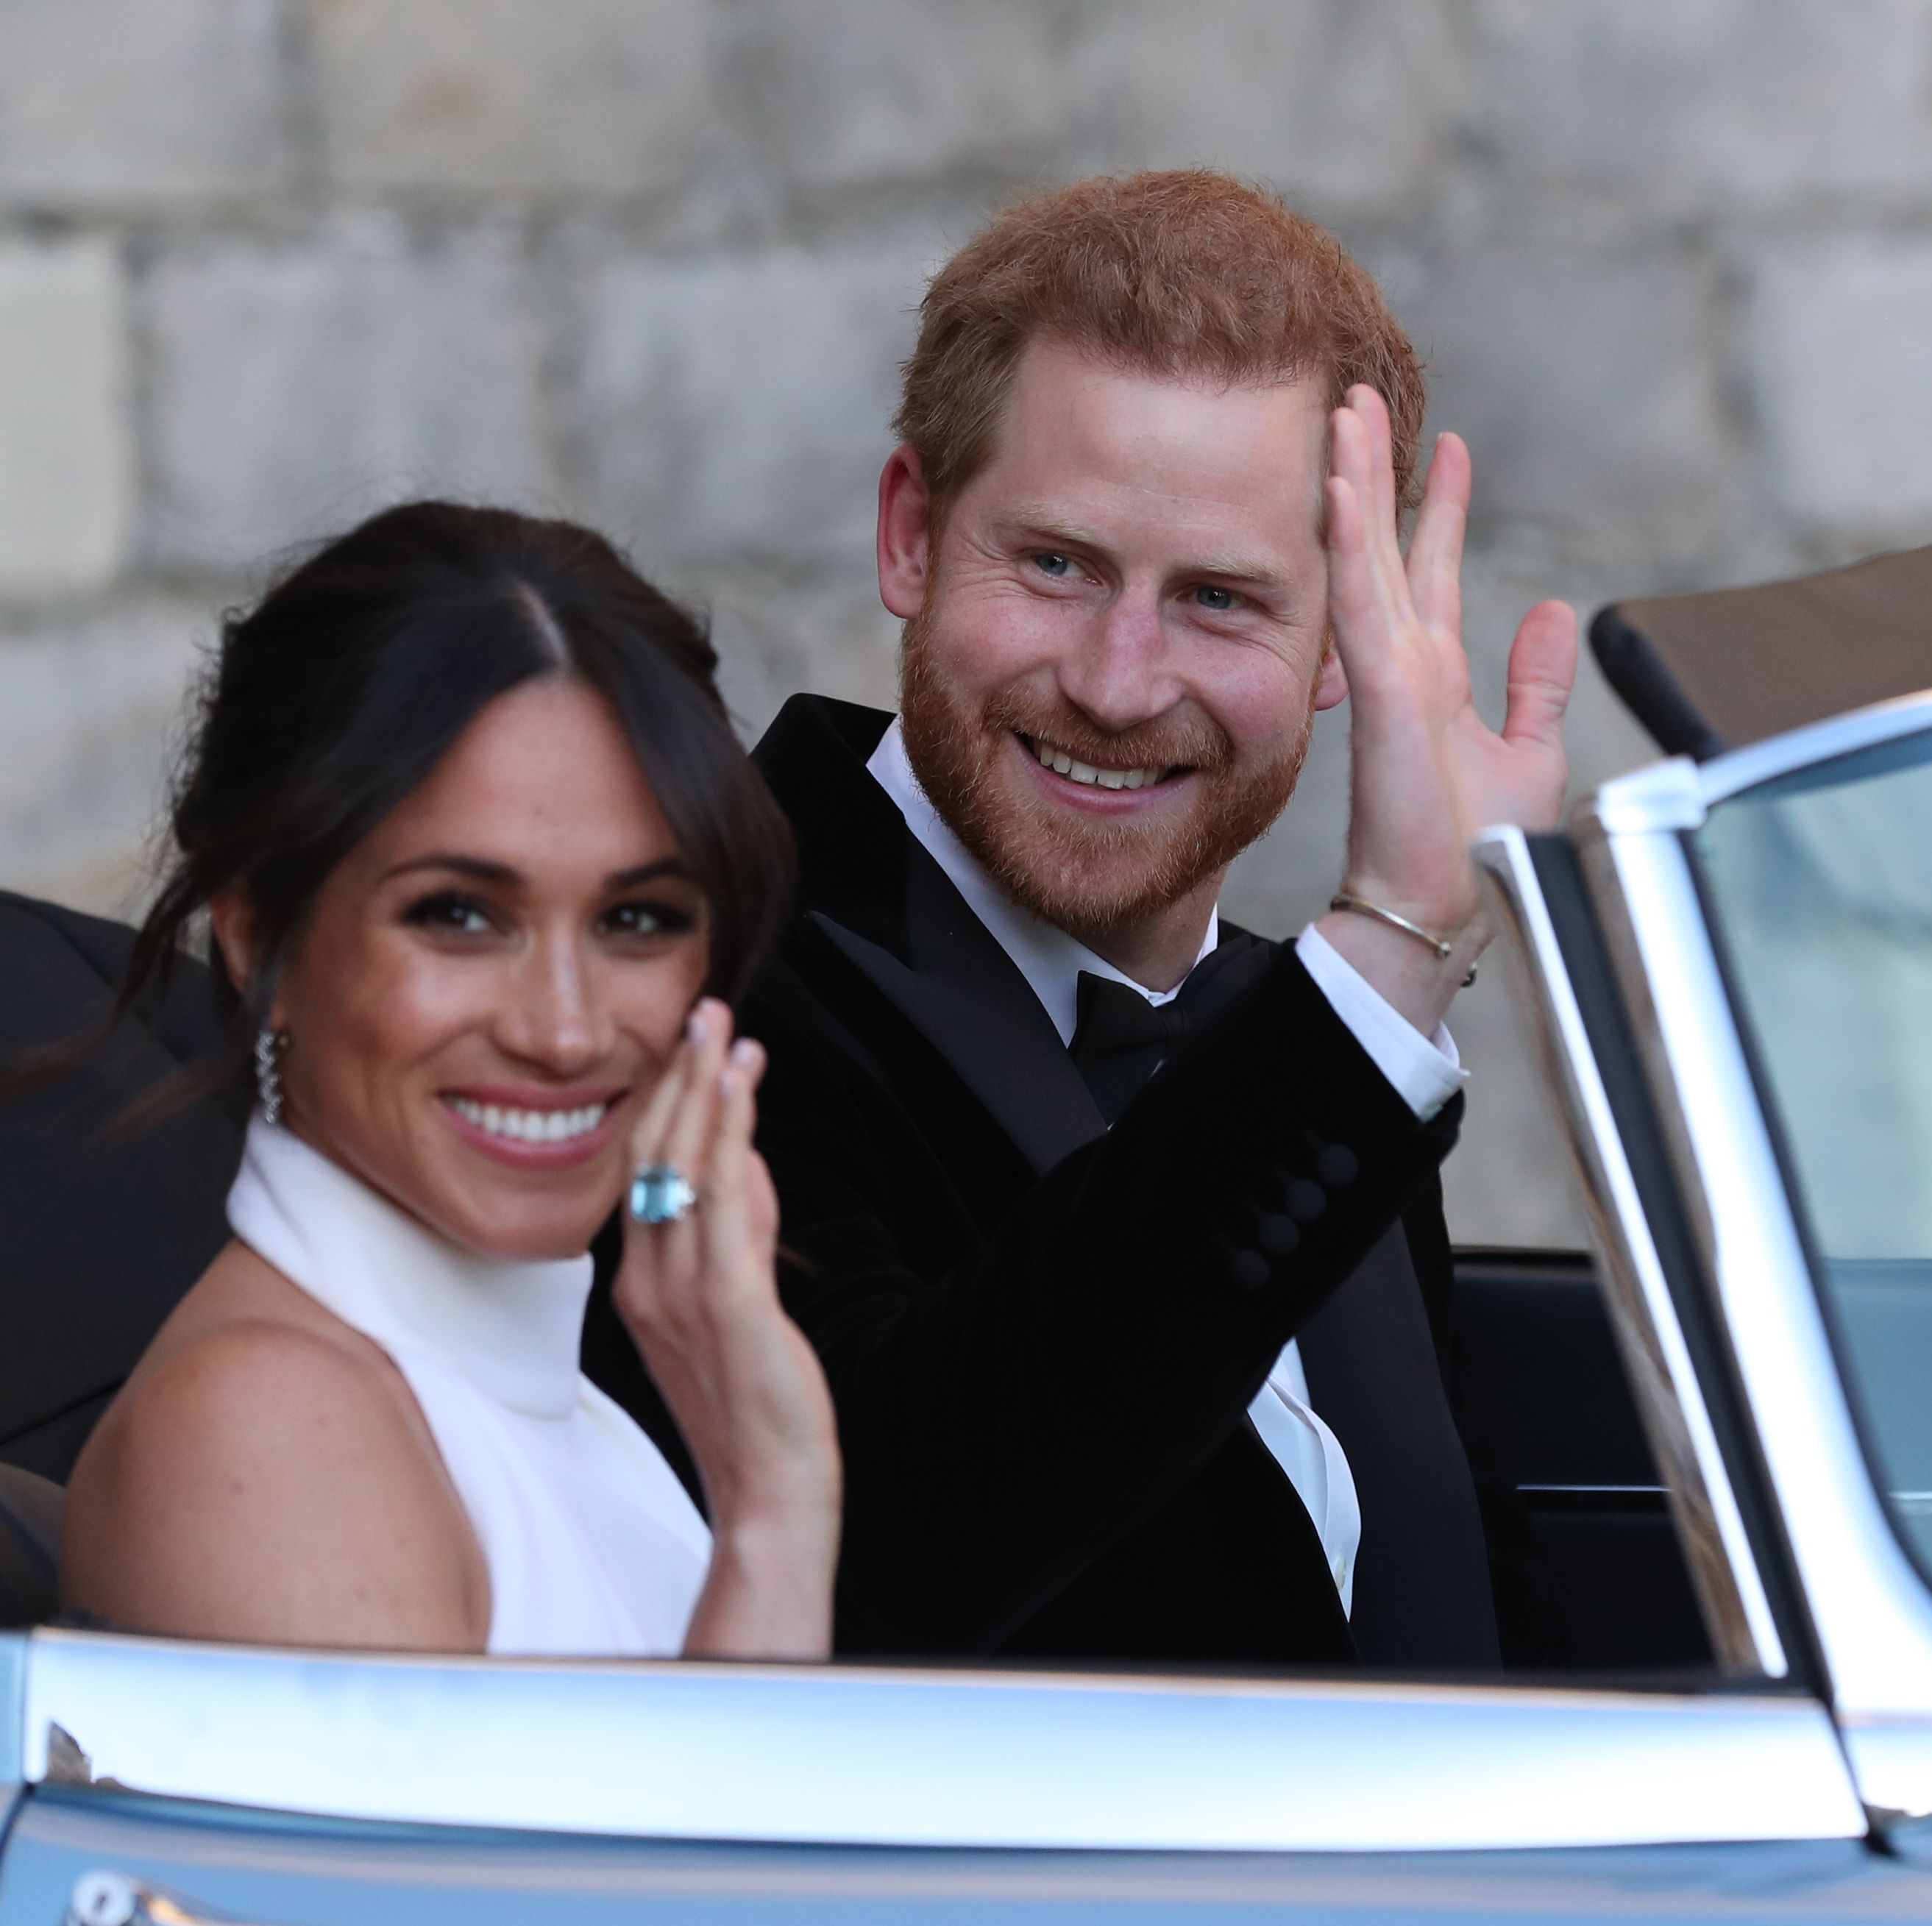 A Handy Guide to Frogmore Cottage, aka Prince Harry and Meghan Markle's New Home